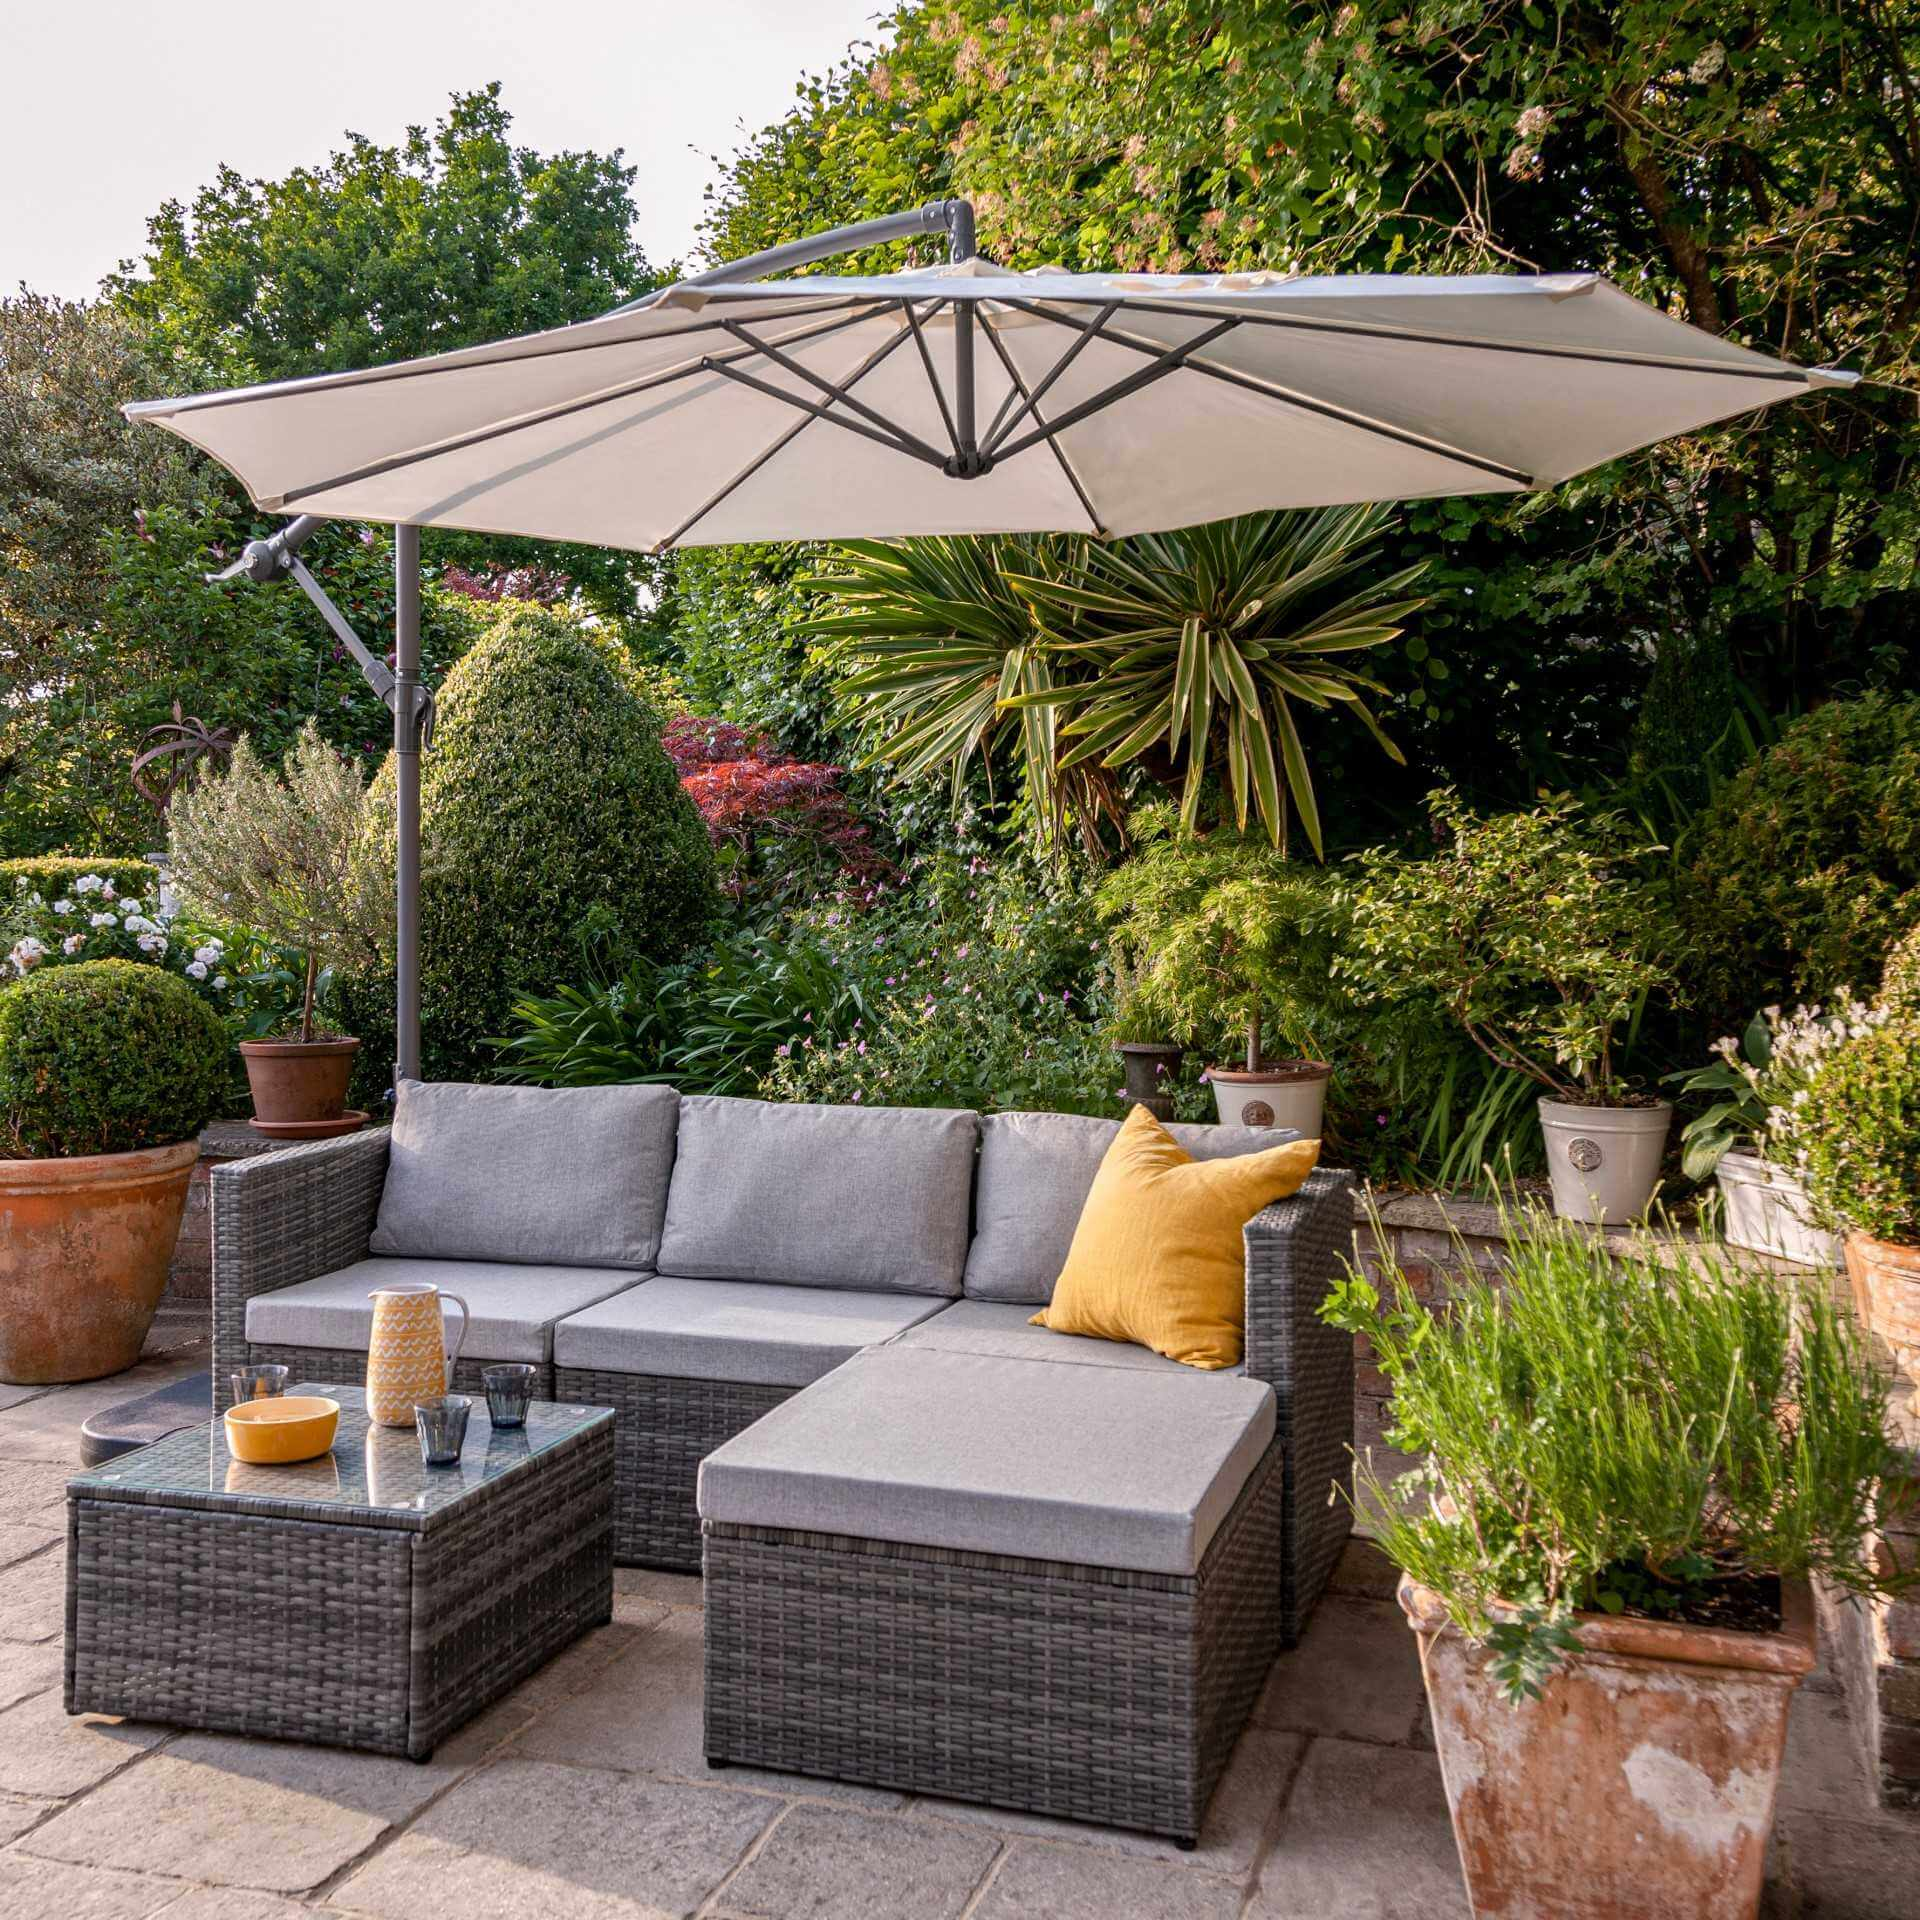 4 Seater Rattan Corner Sofa Set with Lean Over Parasol and Base - Grey Weave - Laura James